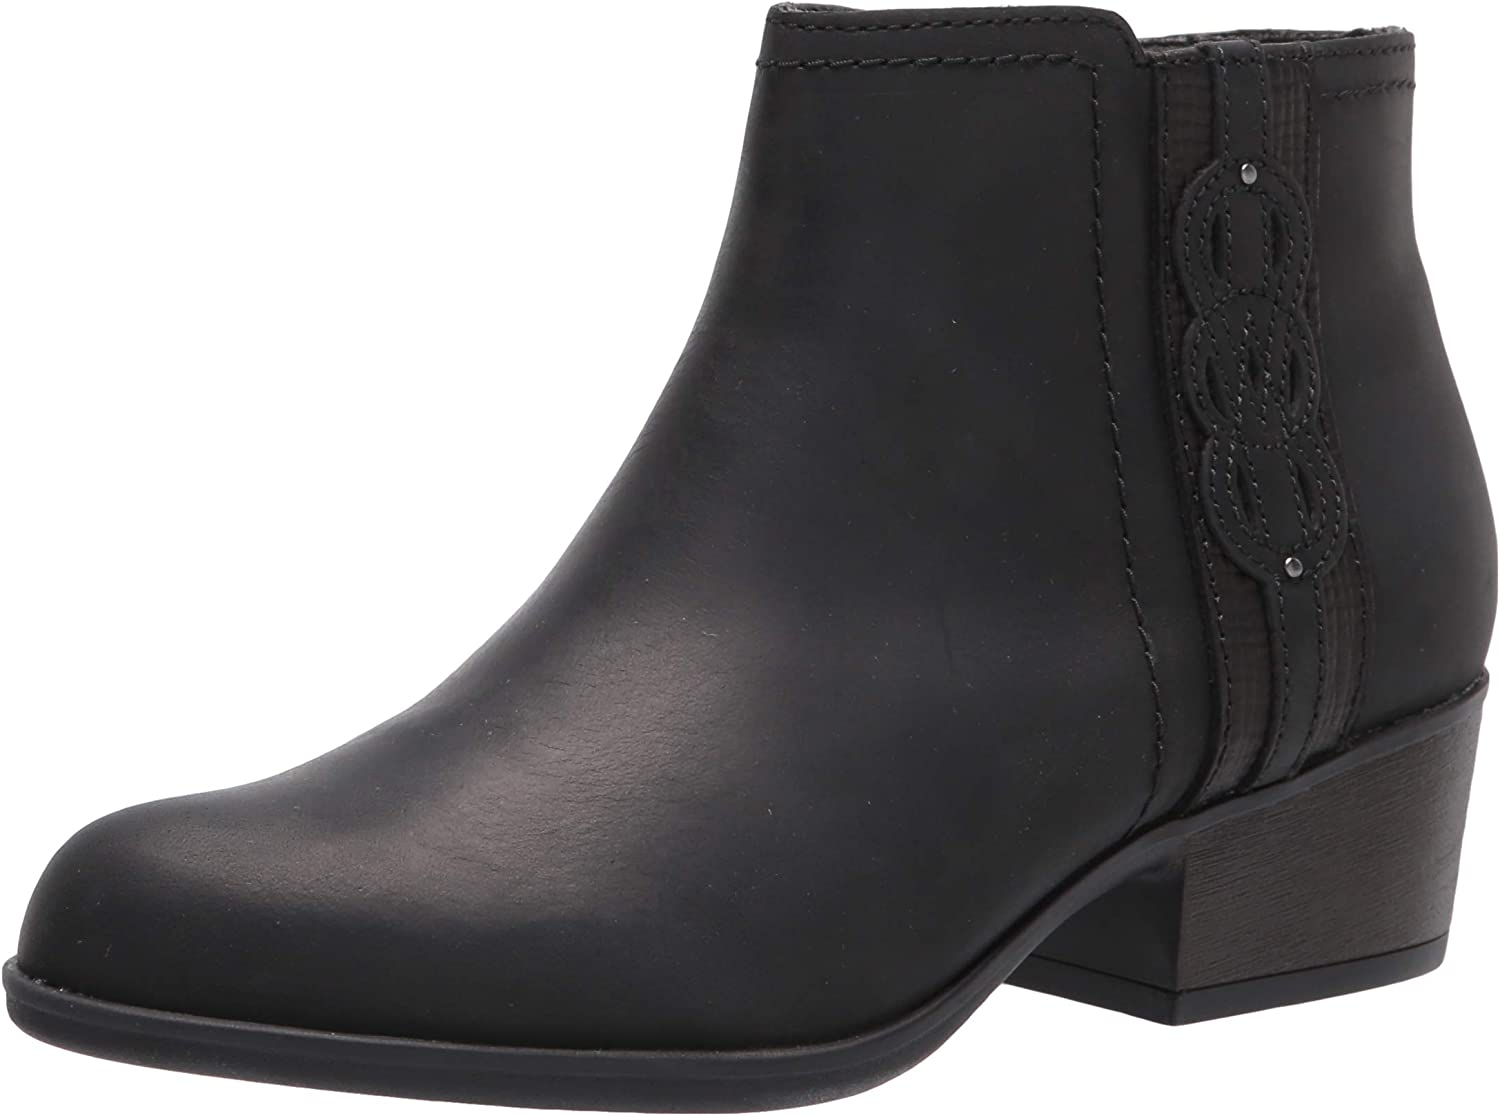 Clarks Women's Adreena Popular brand in the In stock world Lilac Boot Ankle